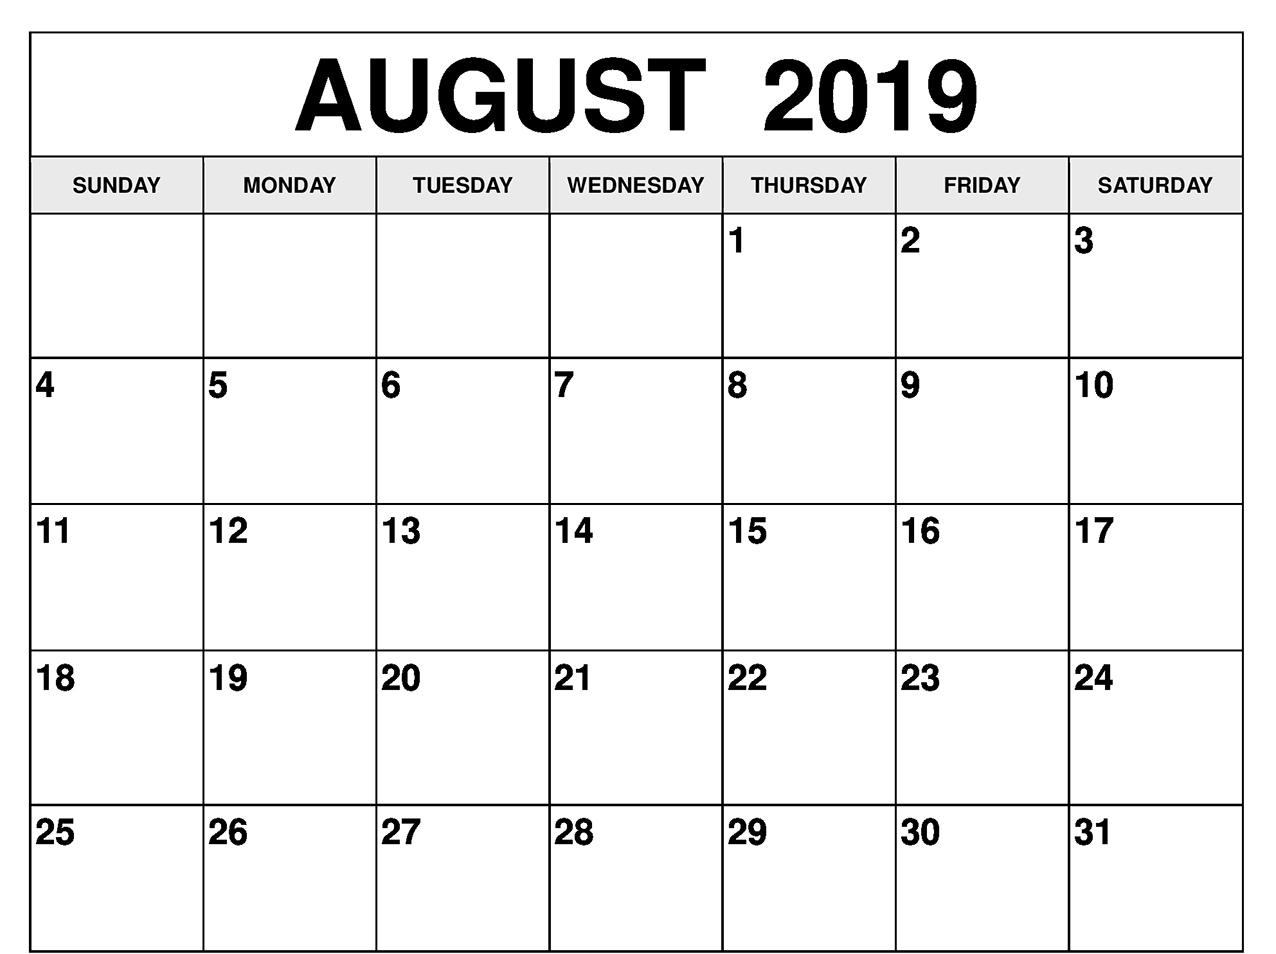 August 2019 Calendar Excel With Blank Printable Template with regard to Downloadable Calendar Templates August